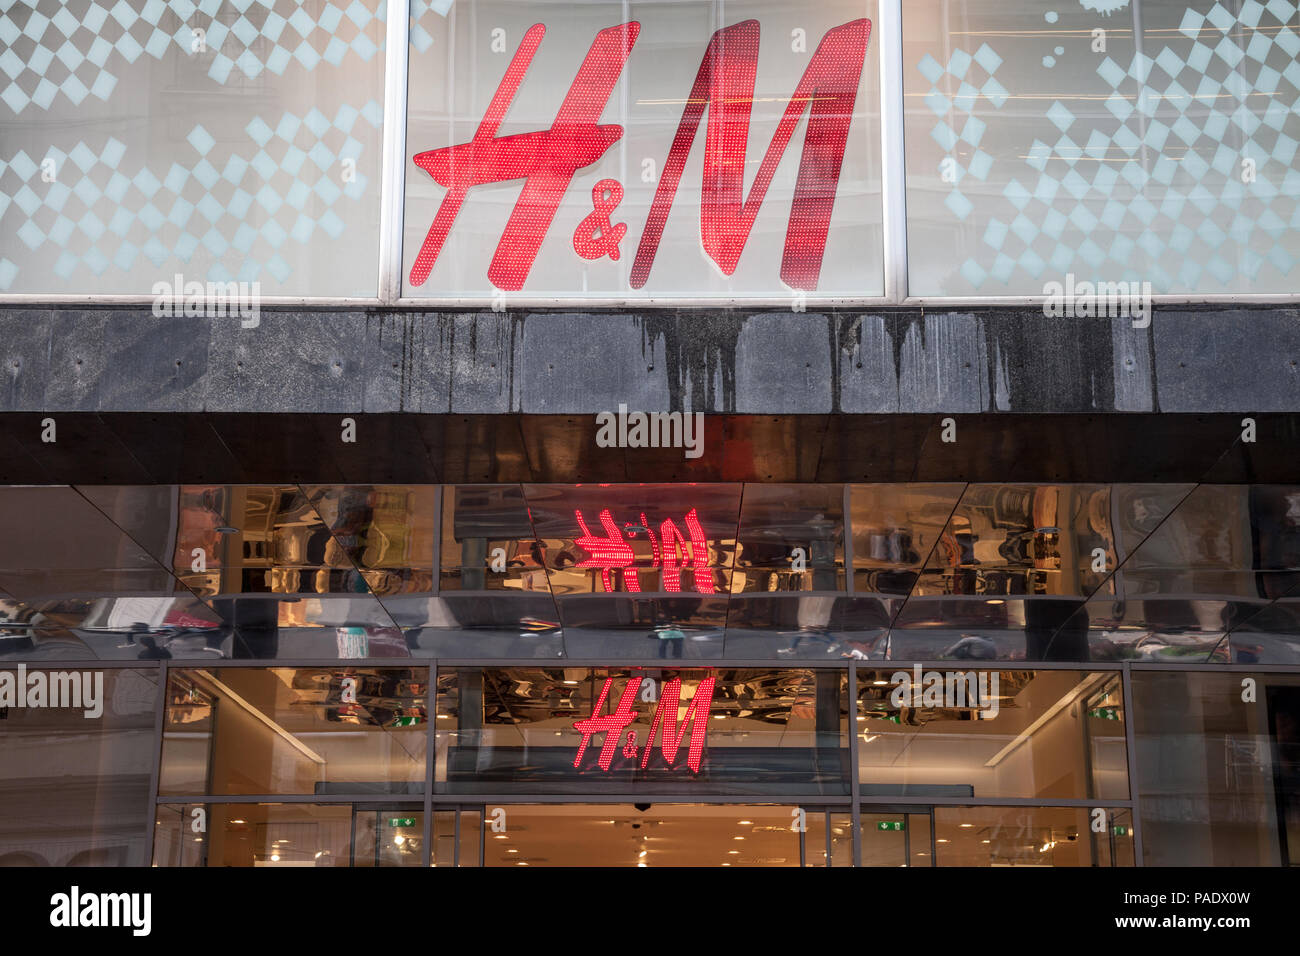 BELGRADE, SERBIA - JULY 9, 2018: Logo of H&M reflecting on the ceiling of their main shop in Belgrade, above the main entrance. H&M is one of the bigg - Stock Image